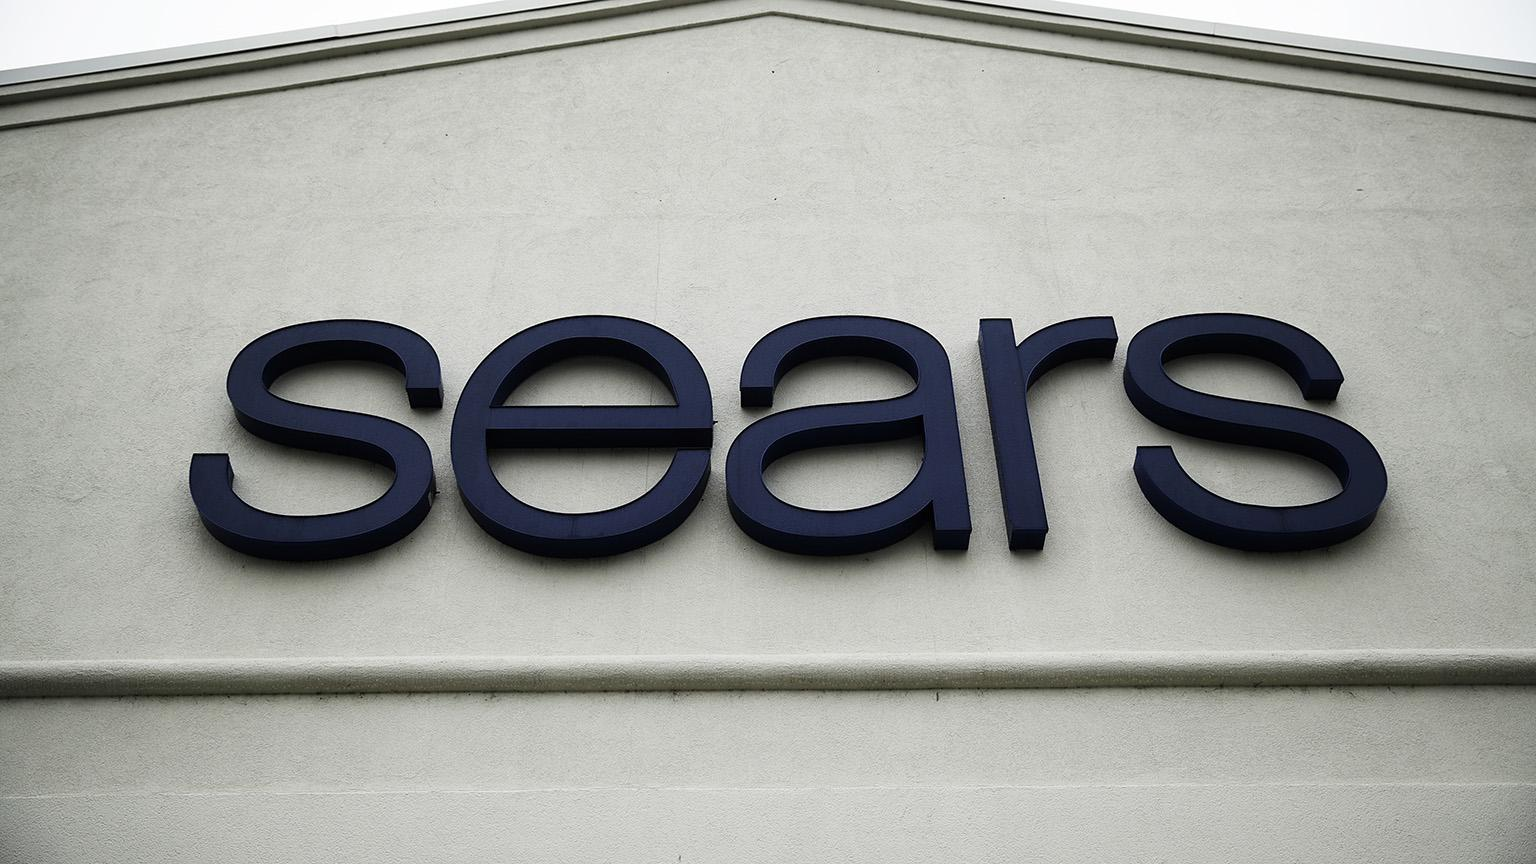 This Oct. 15, 2018 file photo shows a sign for a Sears Outlet department store is displayed in Norristown, Pa.  (AP Photo / Matt Rourke, File)